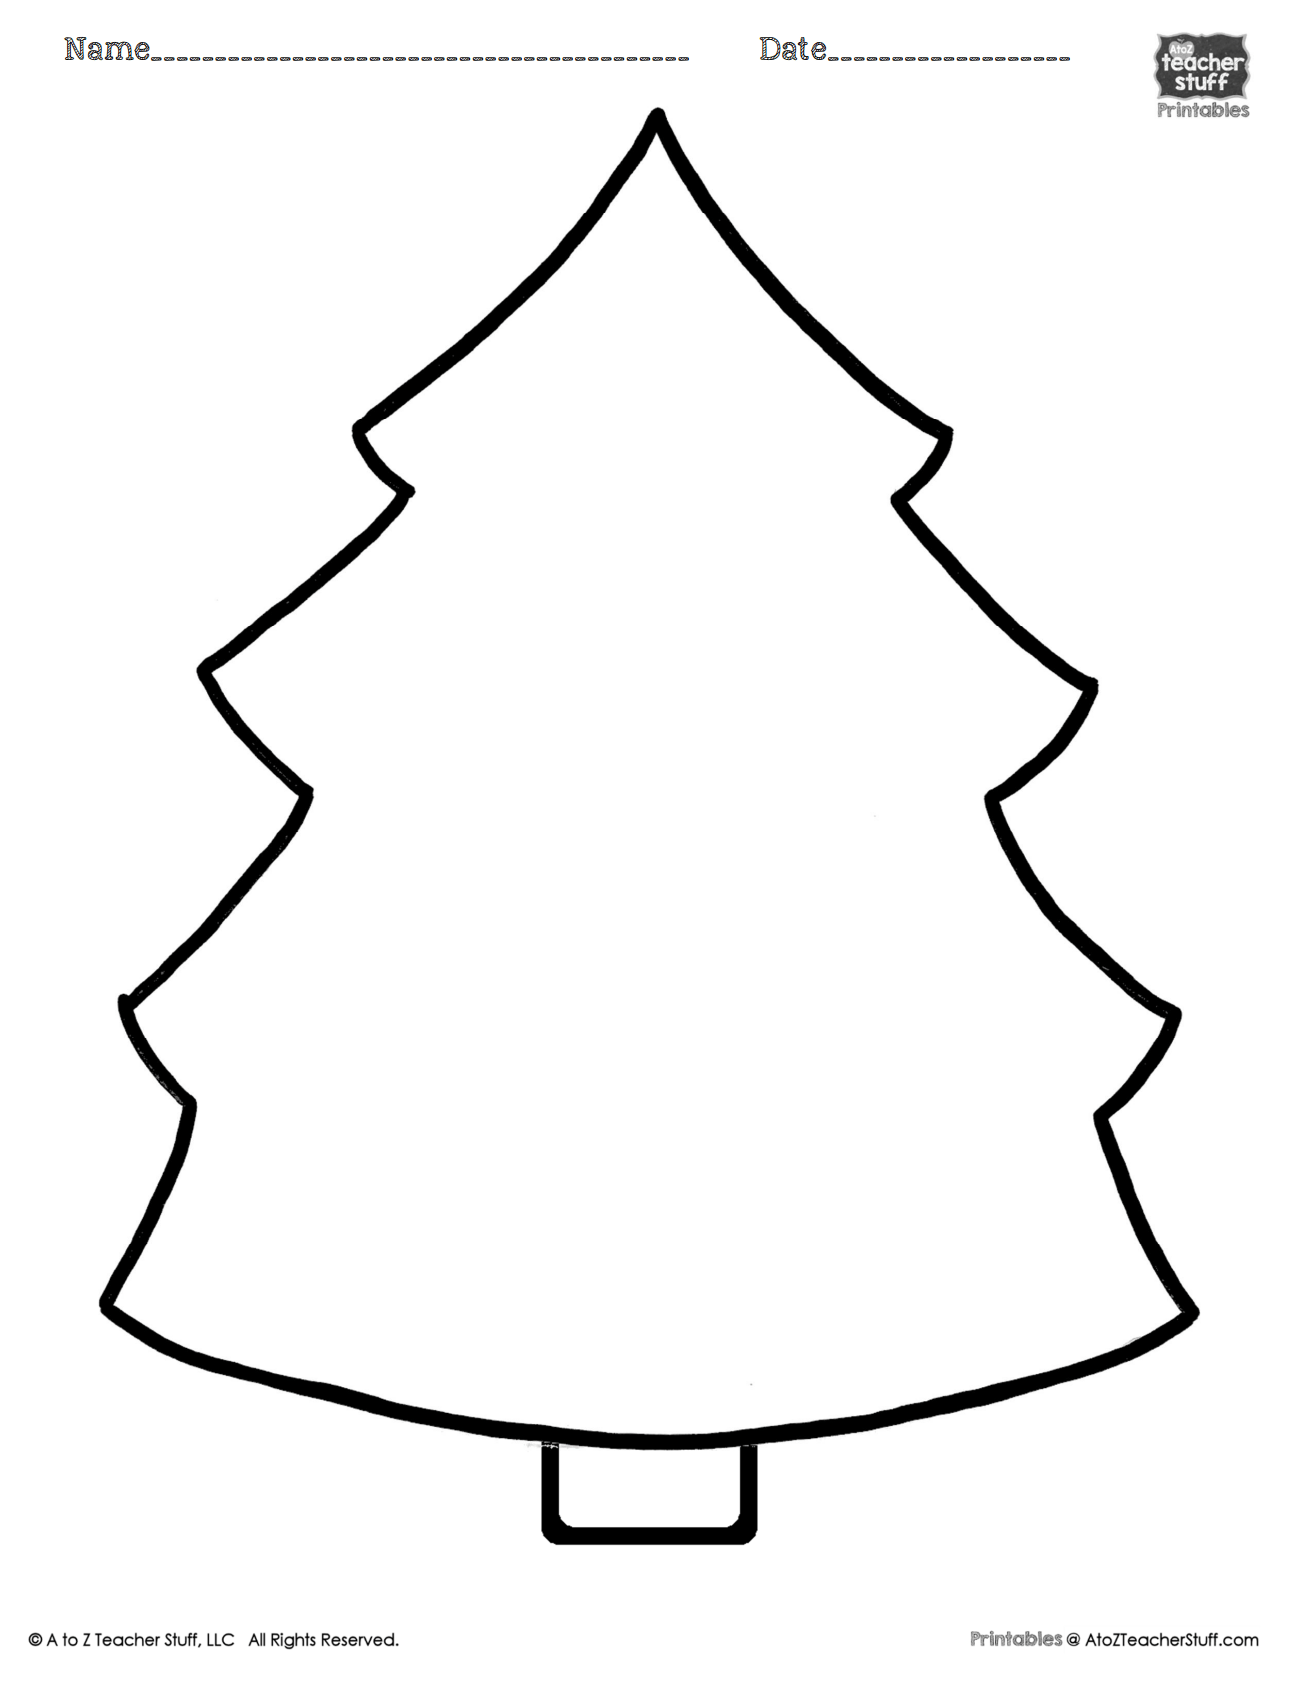 Here Is A Printable Christmas Tree Page You Can Use As A Coloring Sheet Pattern Shape Book